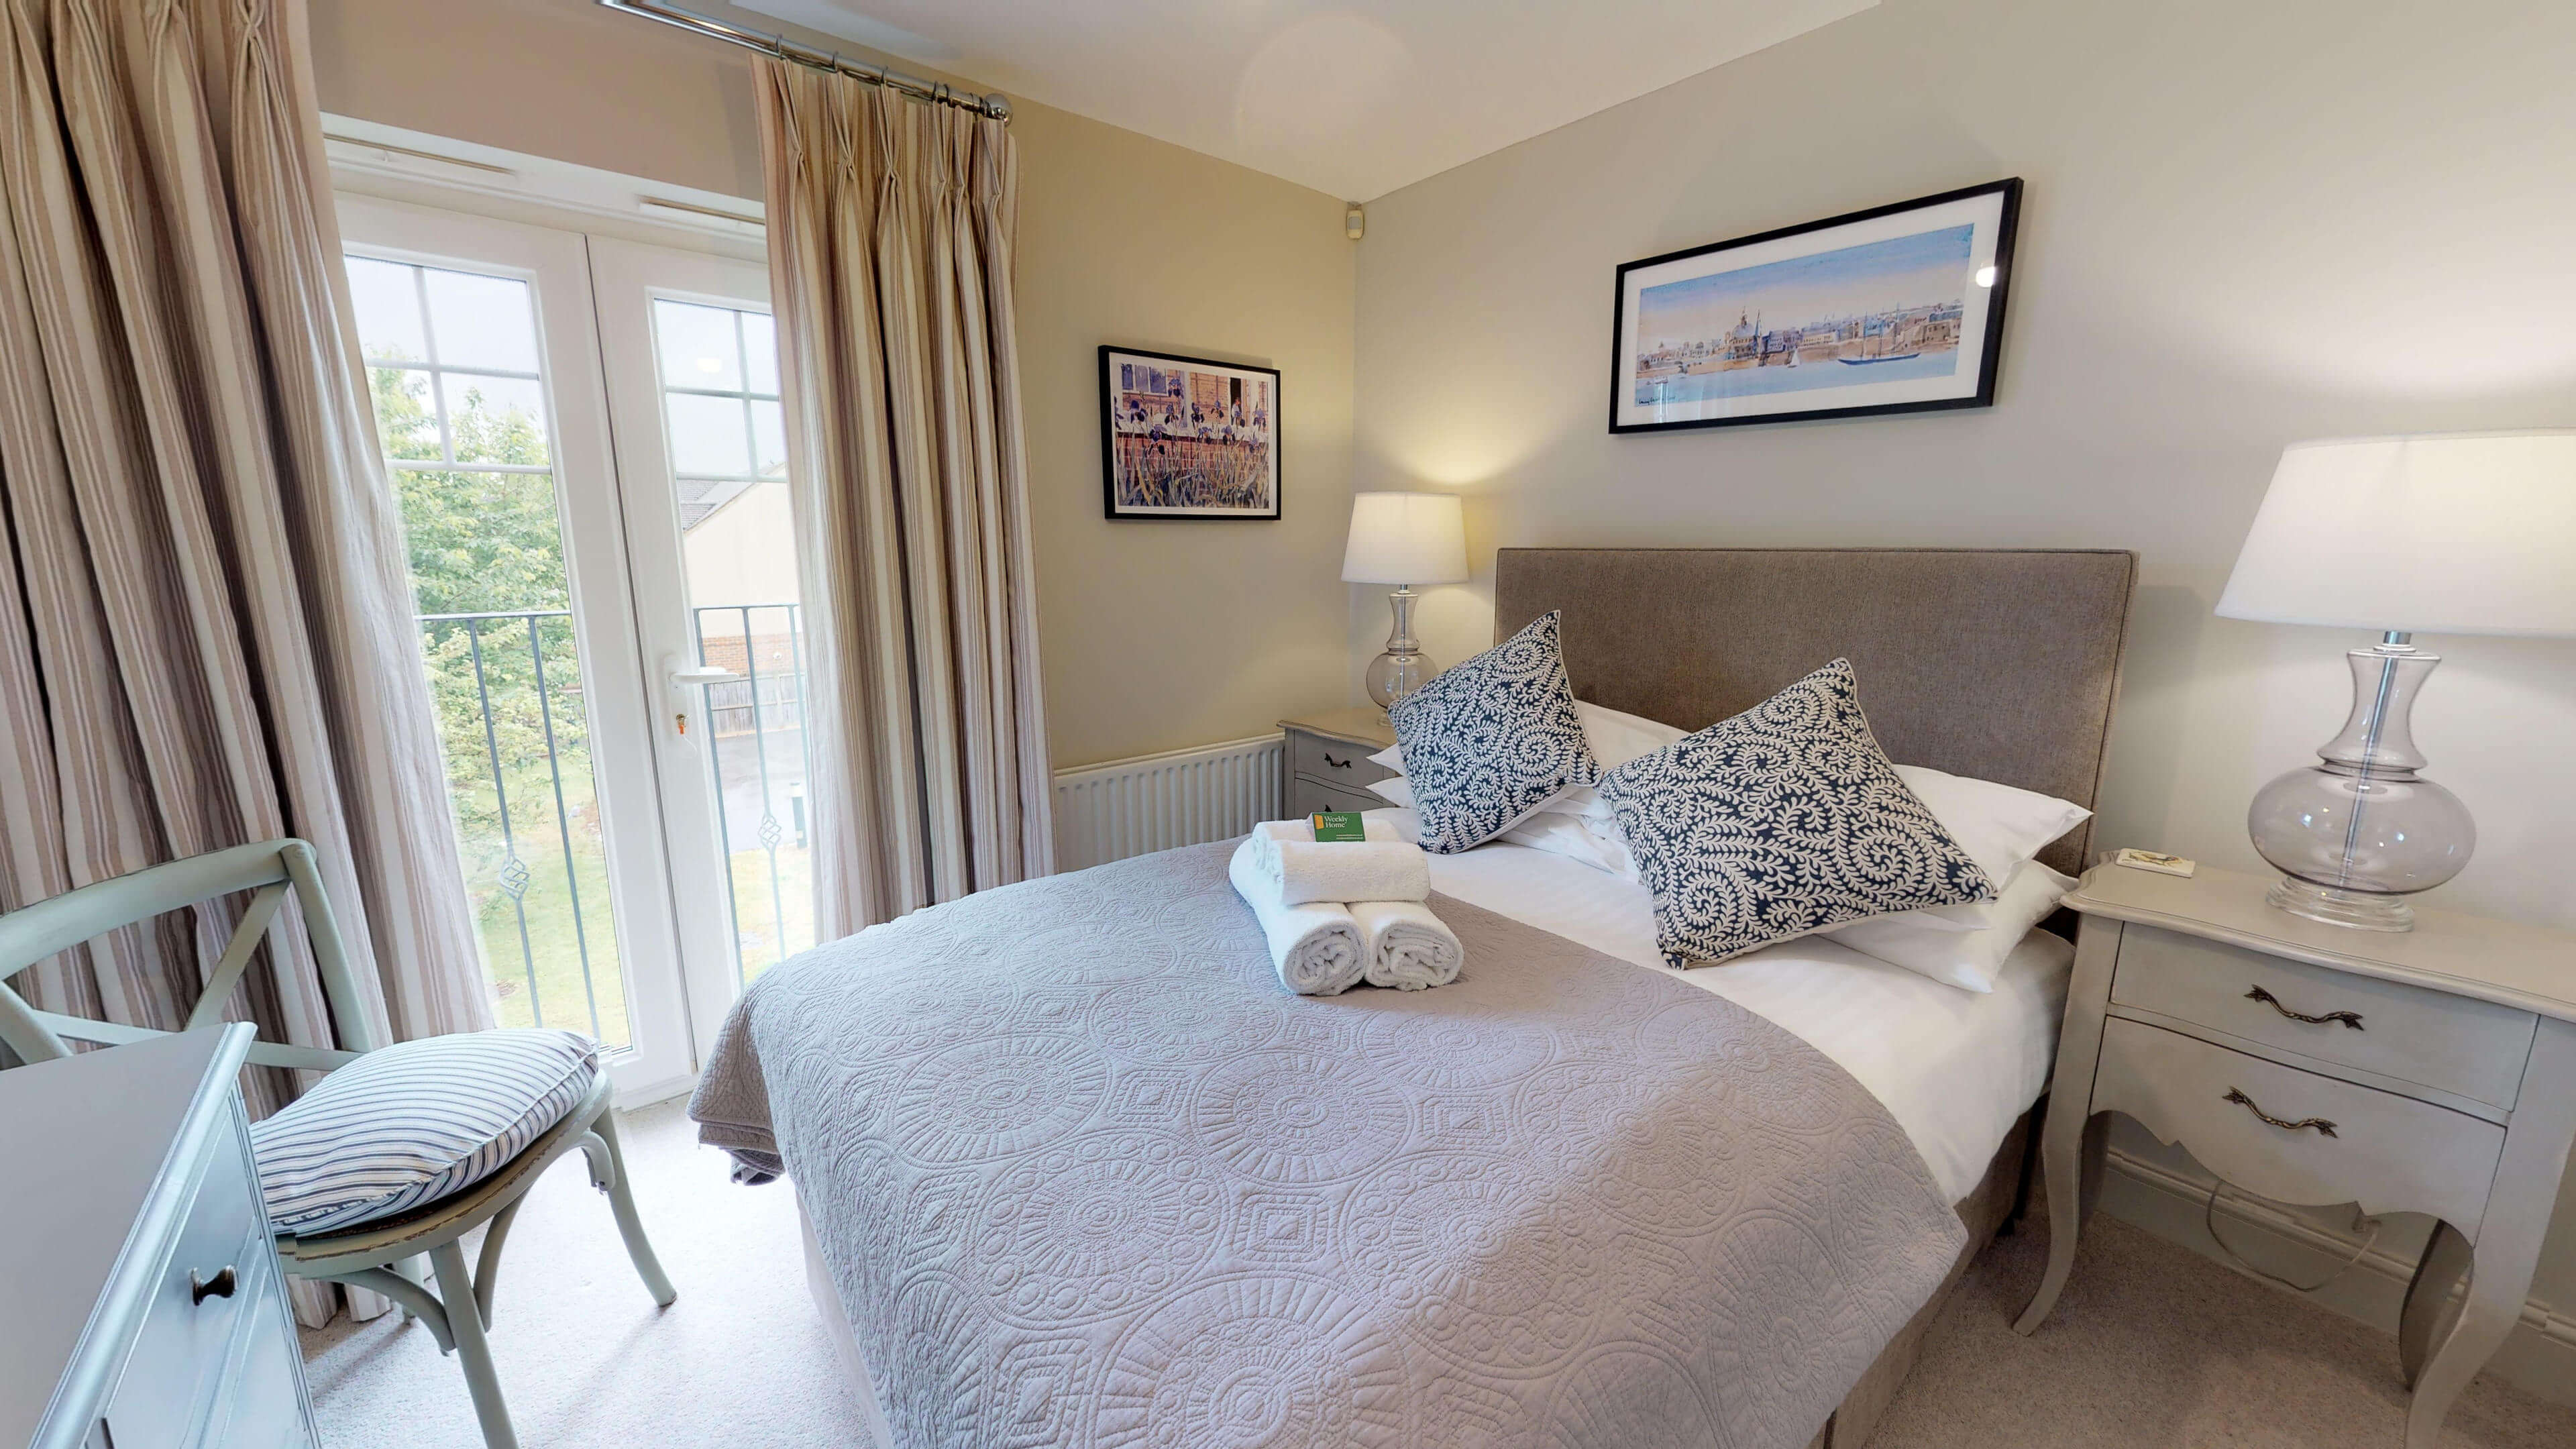 Oxford Serviced Apartments Hensington Suite Bedroom One Bed